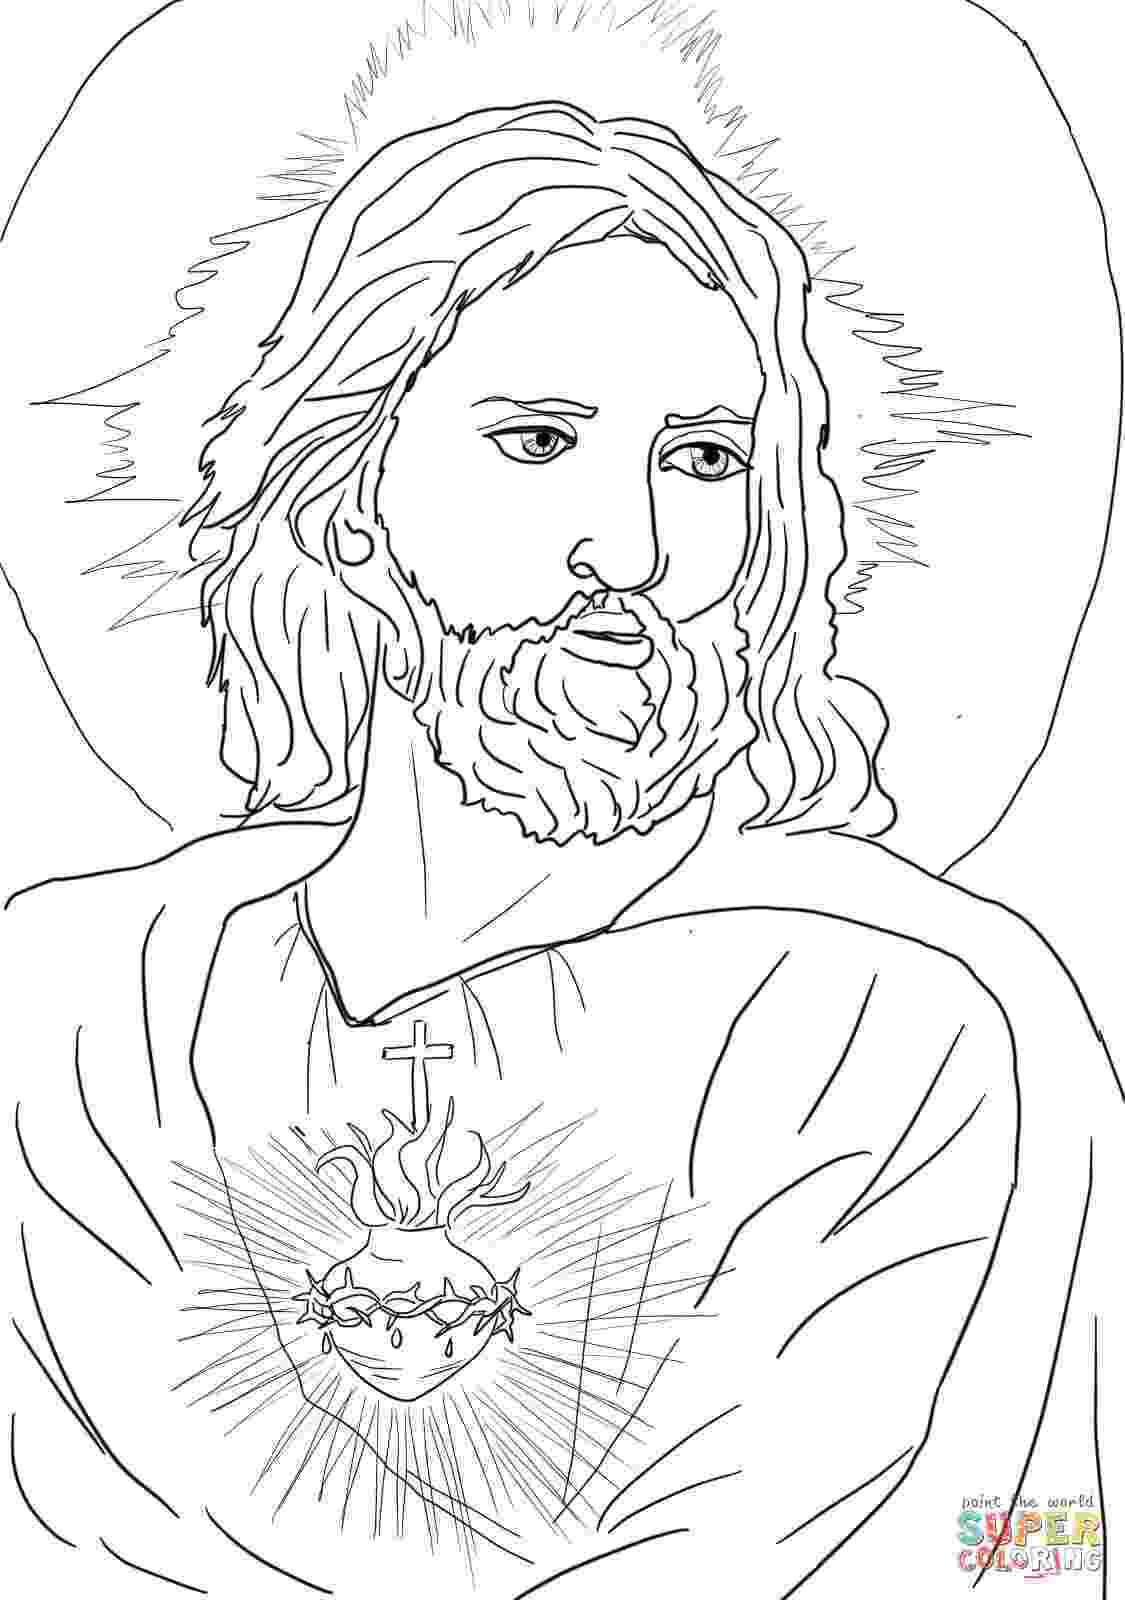 coloring pages jesus sacred heart of jesus coloring page free printable coloring jesus pages